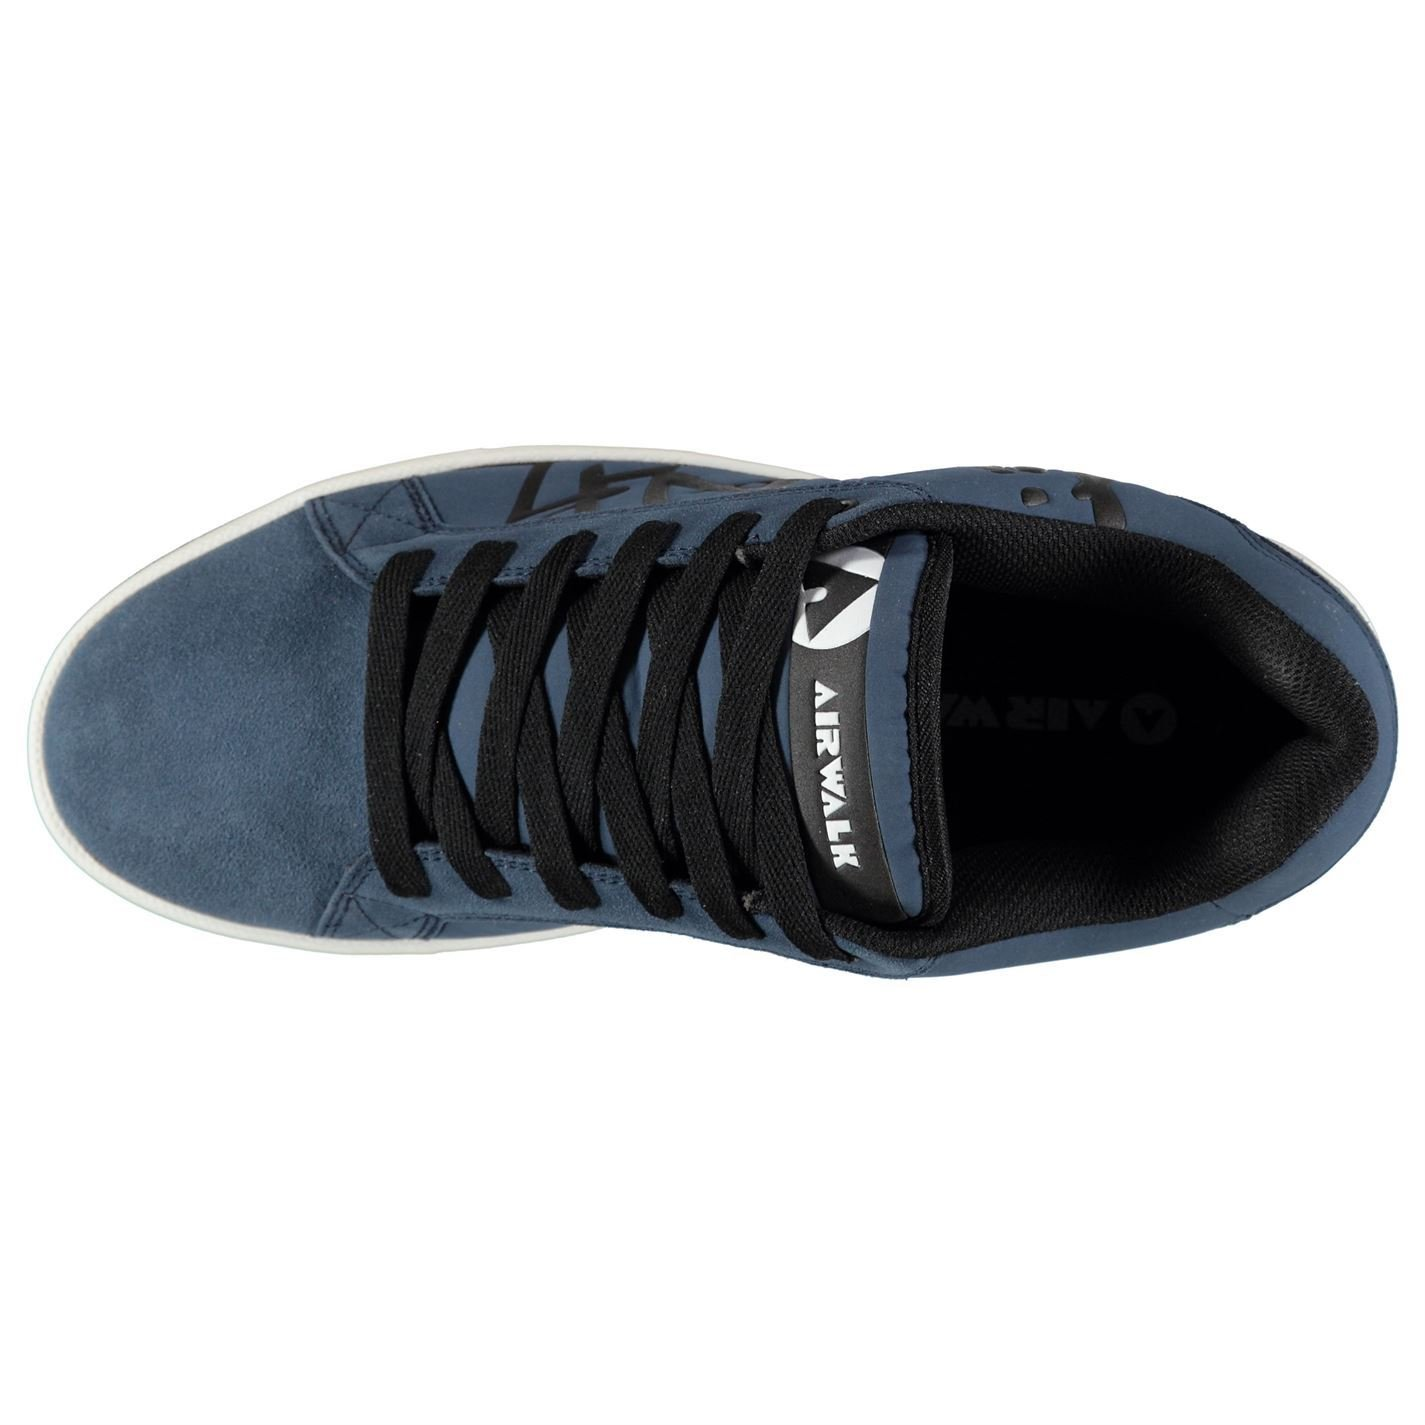 6756026eb9f5 Airwalk Neptune Skate Shoes Mens Navy Casual Trainers Sneakers   Amazon.co.uk  Clothing